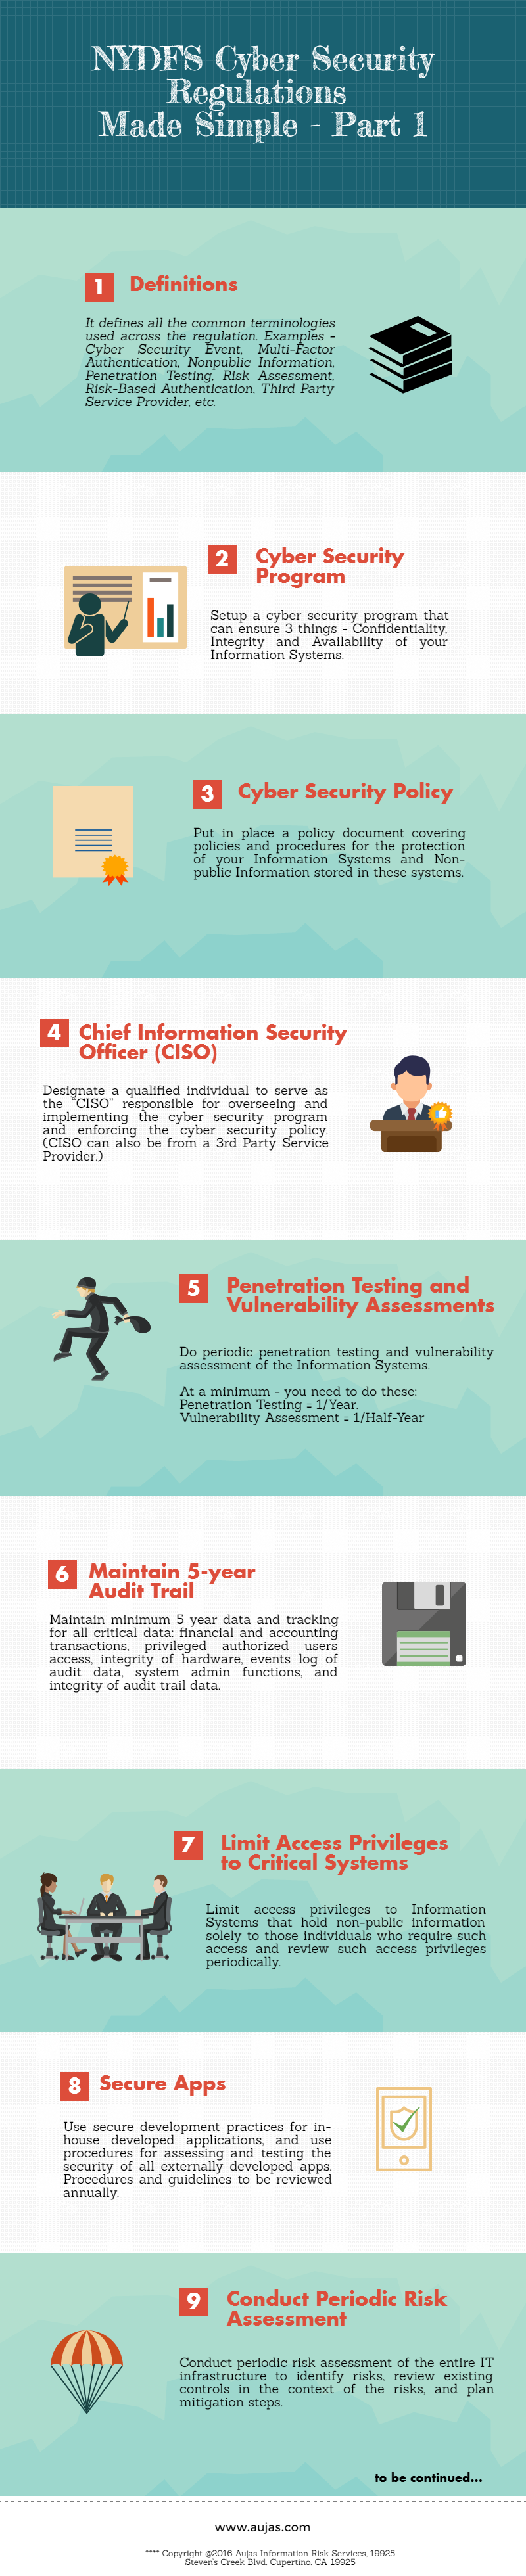 NYDFS-cyber-security-regulations-made-easy-part-1-v3.png